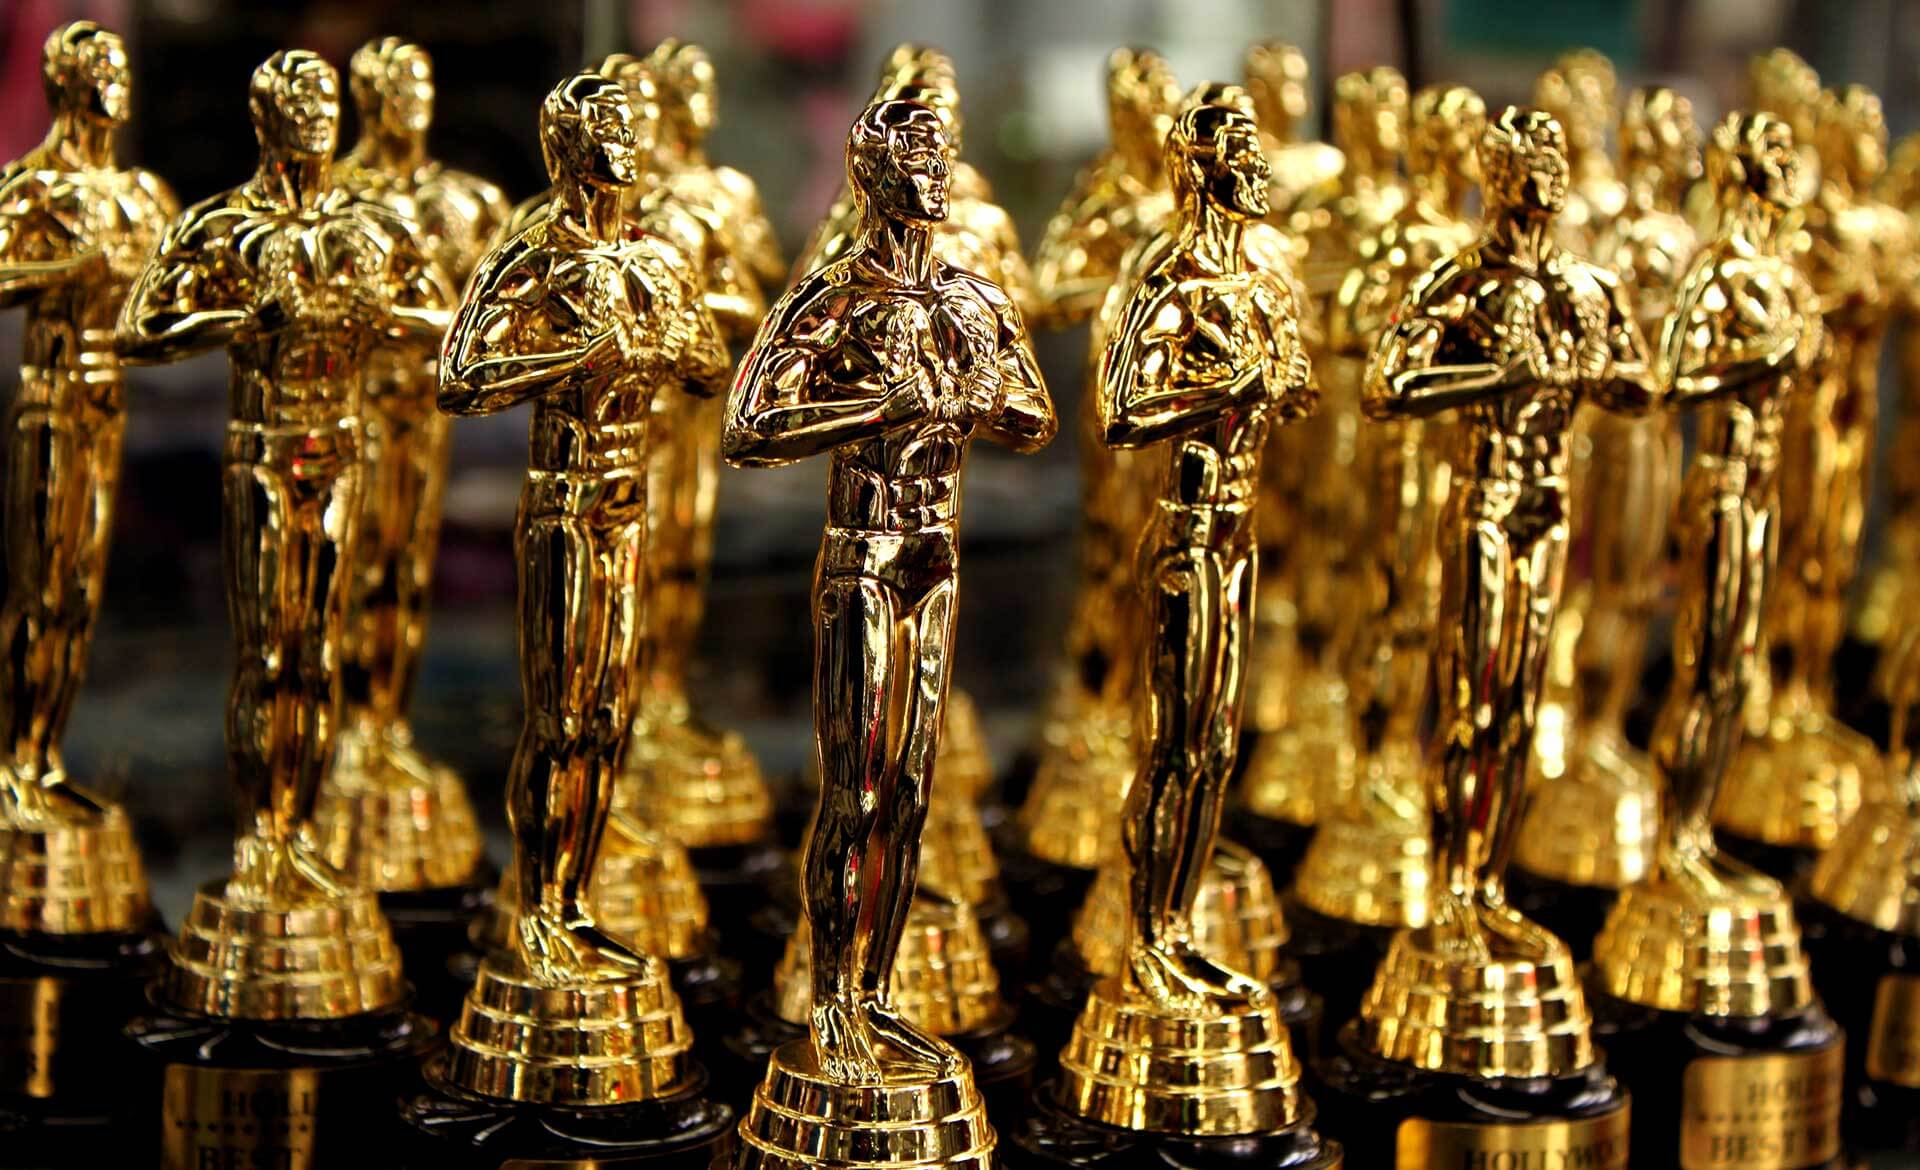 Award Season: Los Angeles, Oscars Trucks